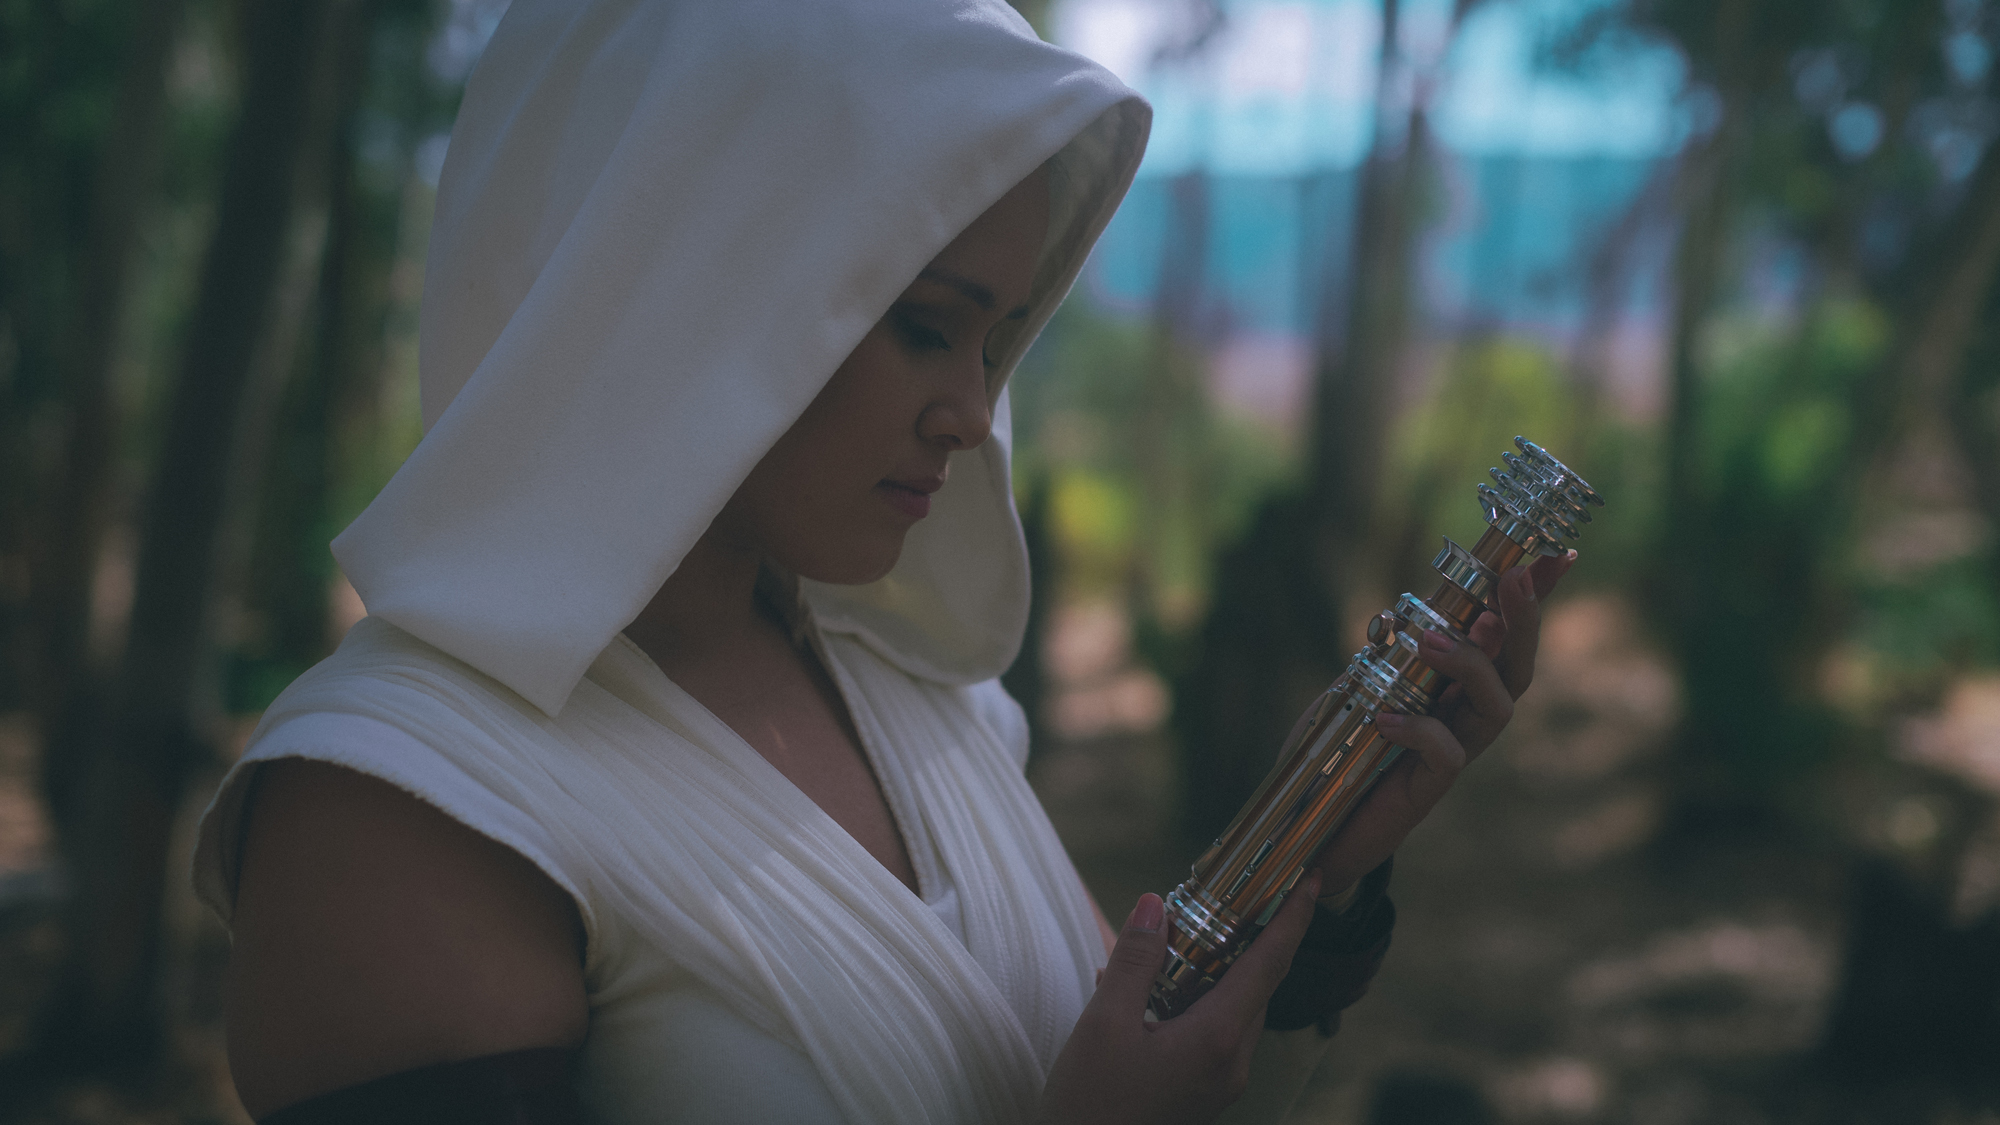 Star Wars Cosplay vs. Bounding - Featuring Rey from The Rise of Skywalker | Anakin and His Angel